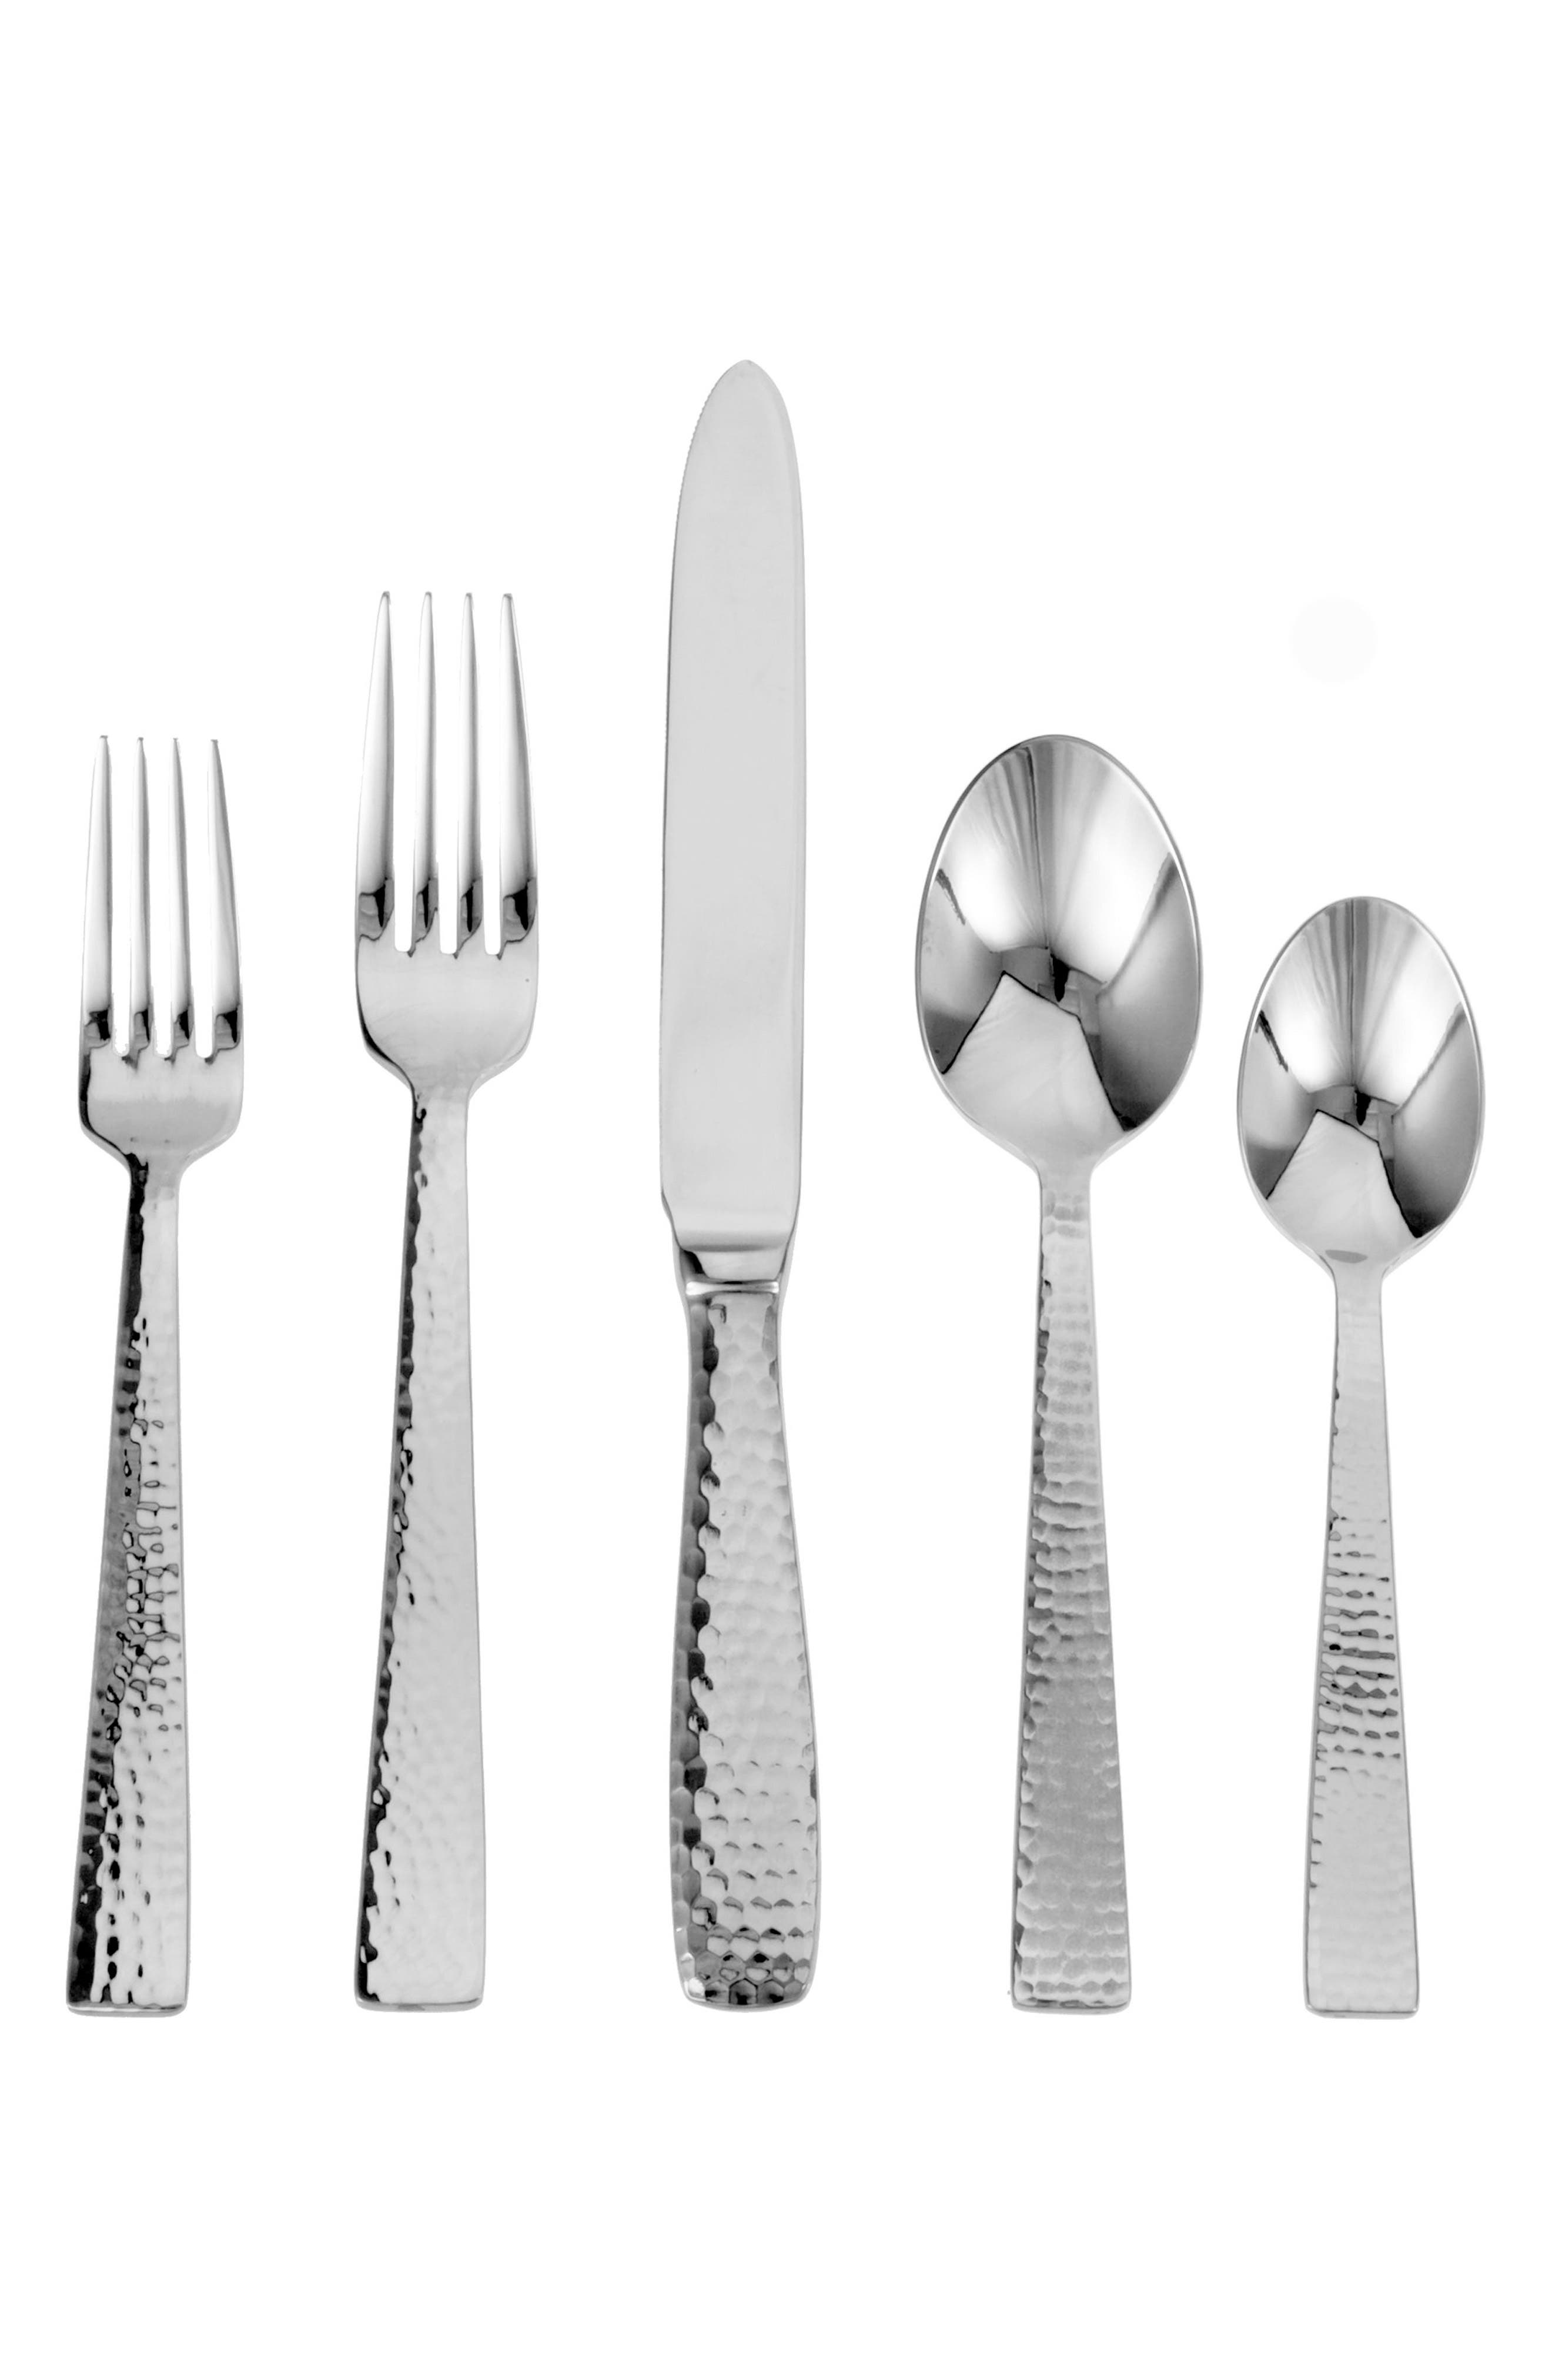 Alternate Image 1 Selected - Ricci Argentieri Martello 45-Piece Stainless Steel Flatware Set